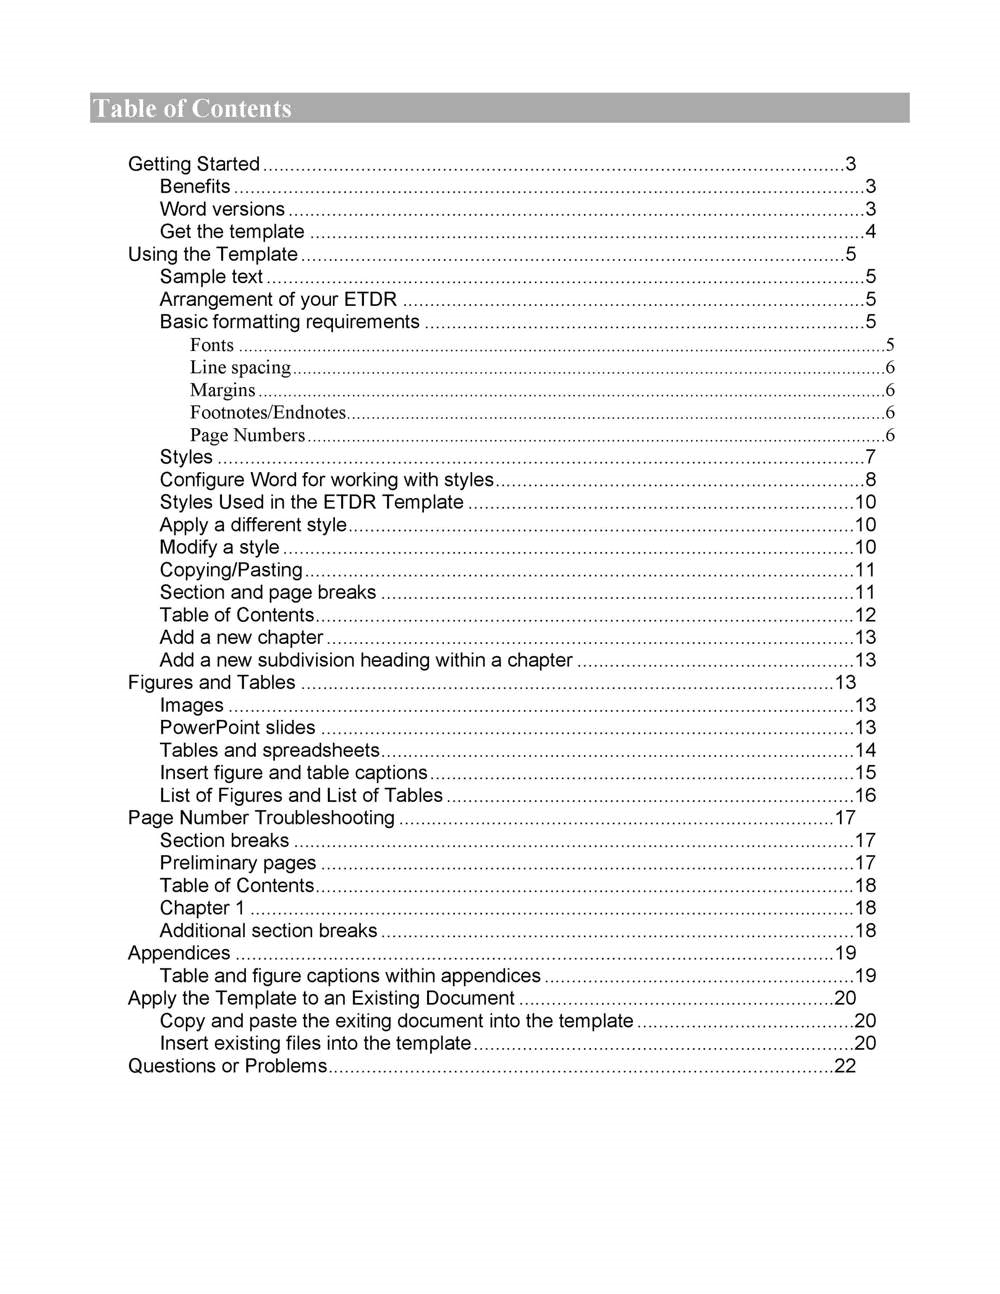 Word Book Template With Table Of Contents from freepdf-books.com